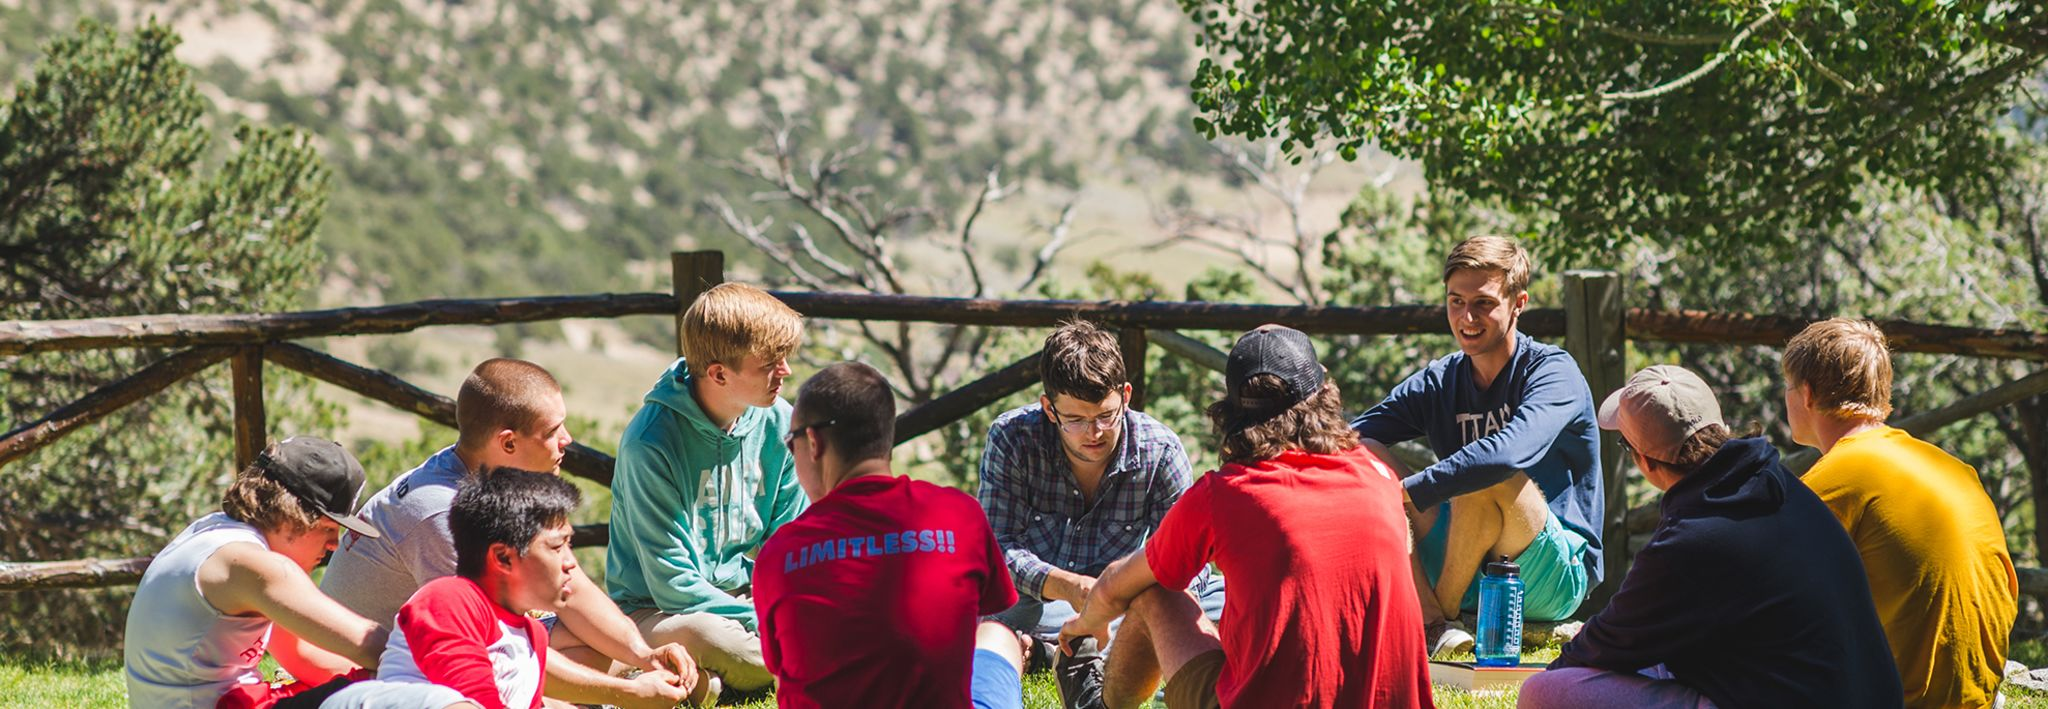 CCU students talking on a camping trip.